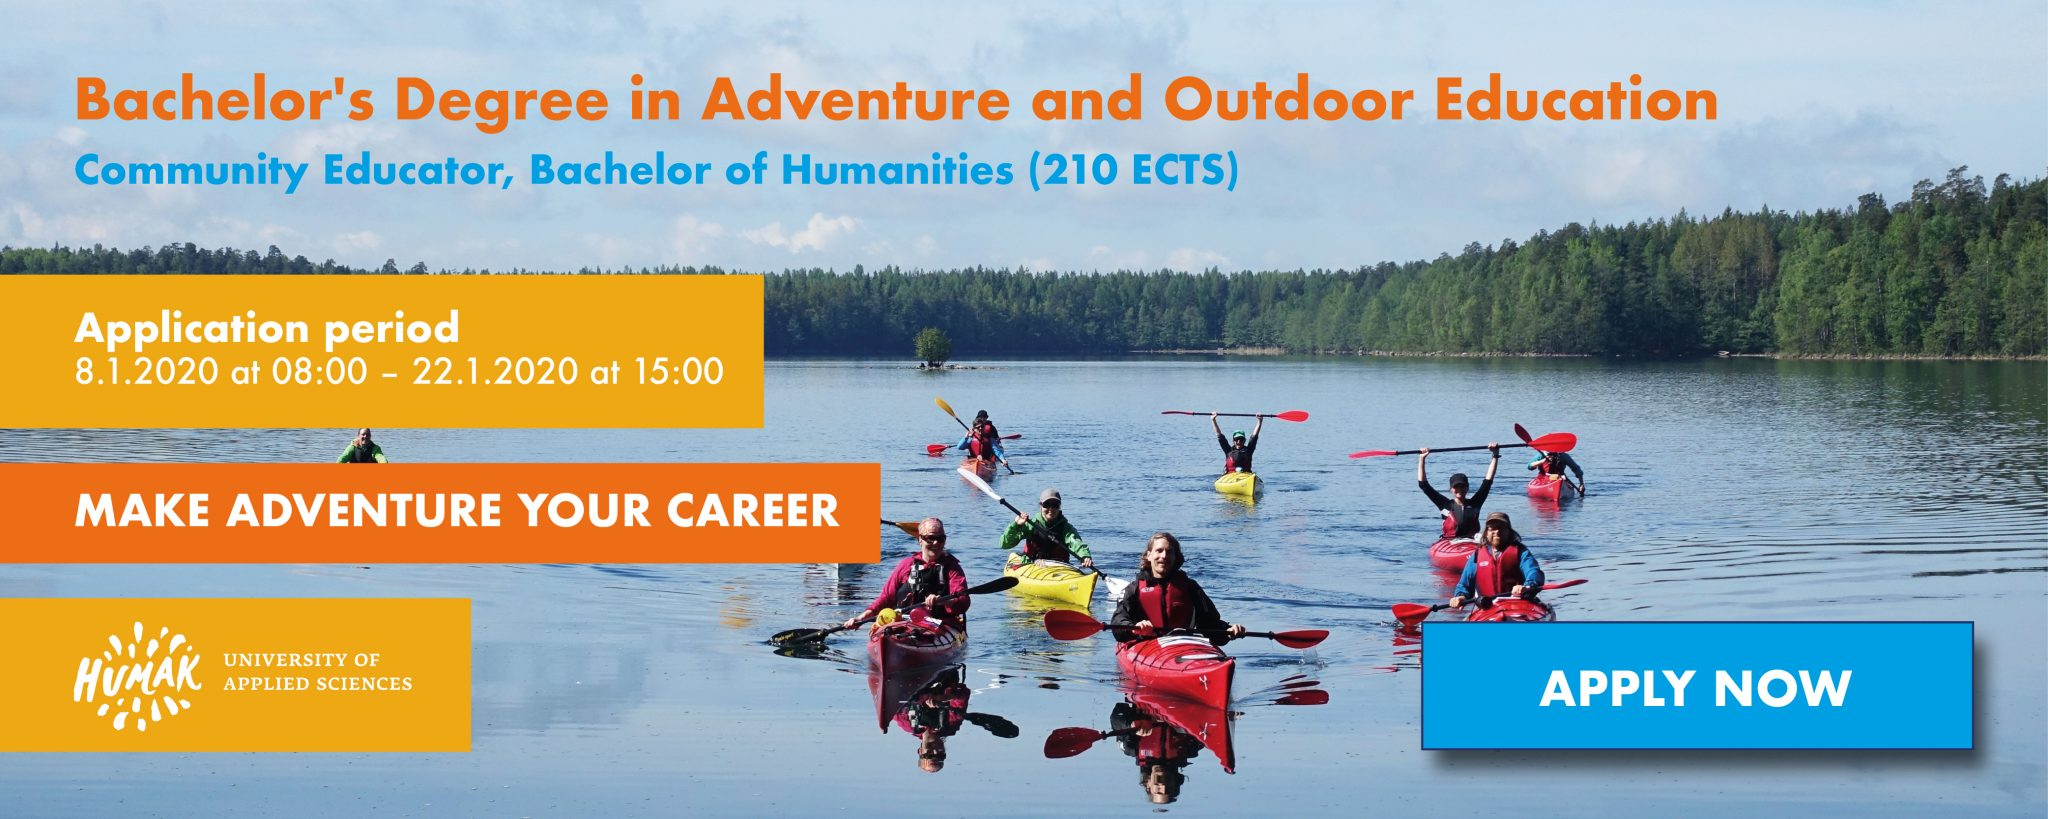 Bachelors-degree-in-adventure-and-outdoor-education-application-2020-january-1